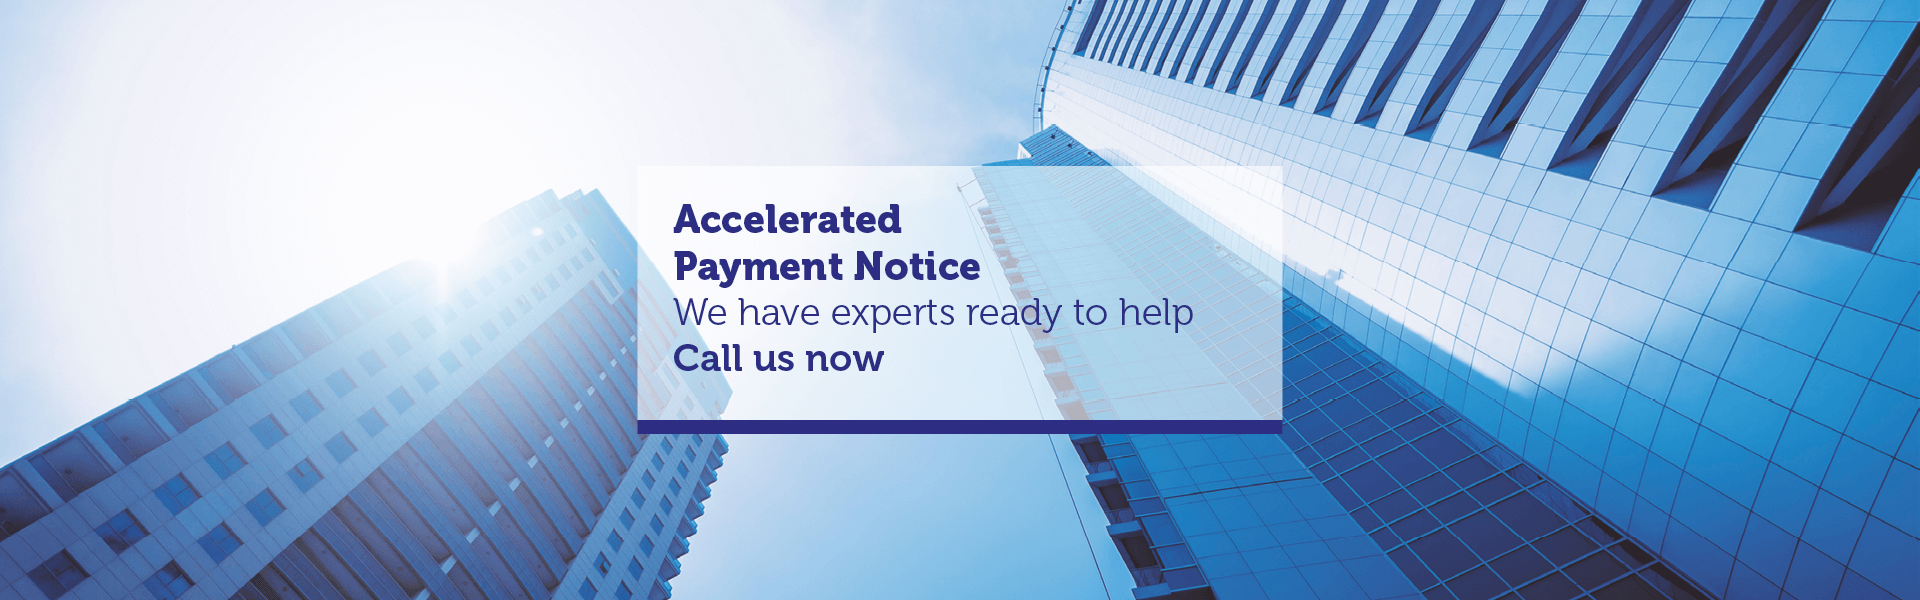 Accelerated Payment Notice